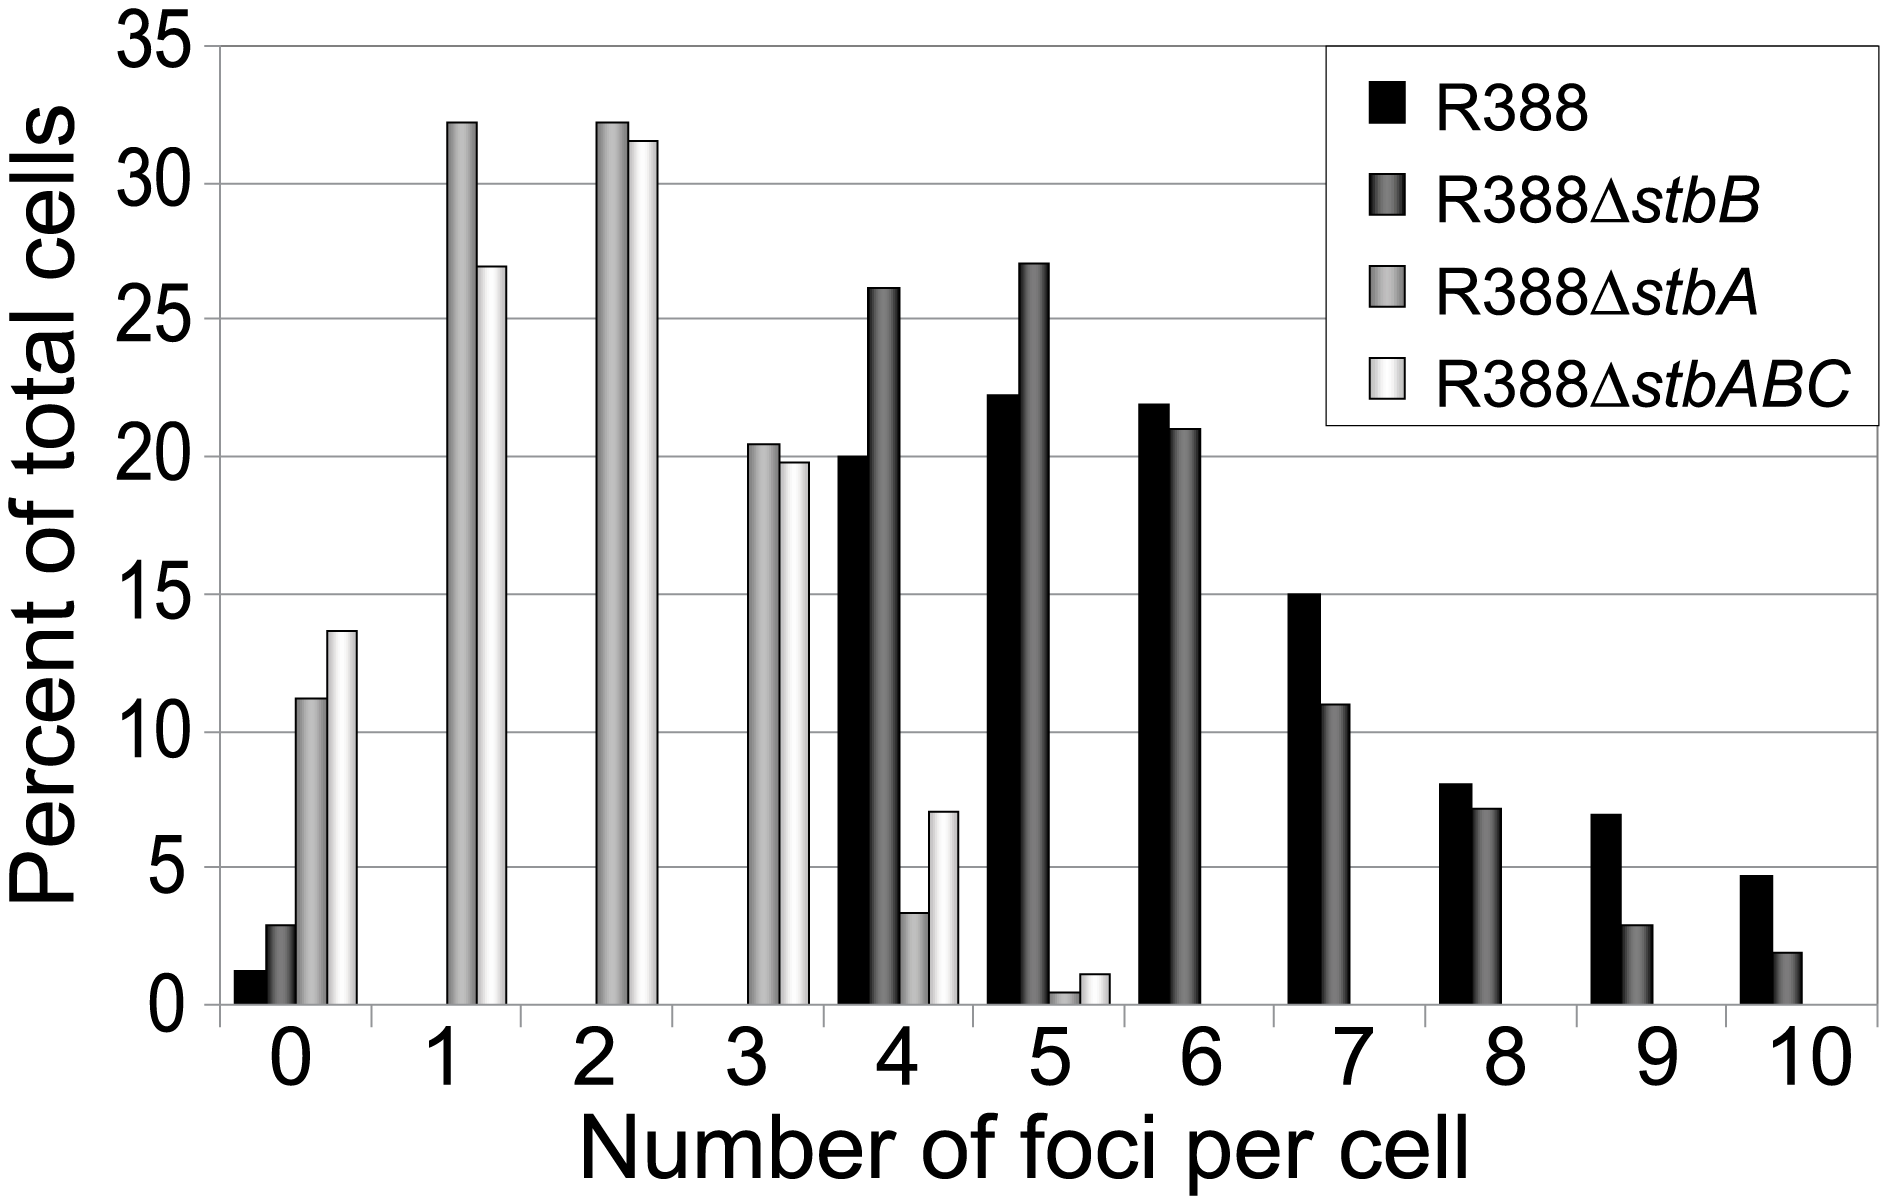 Comparison of the relative number of foci in cells harbouring plasmid R388 or derivatives.